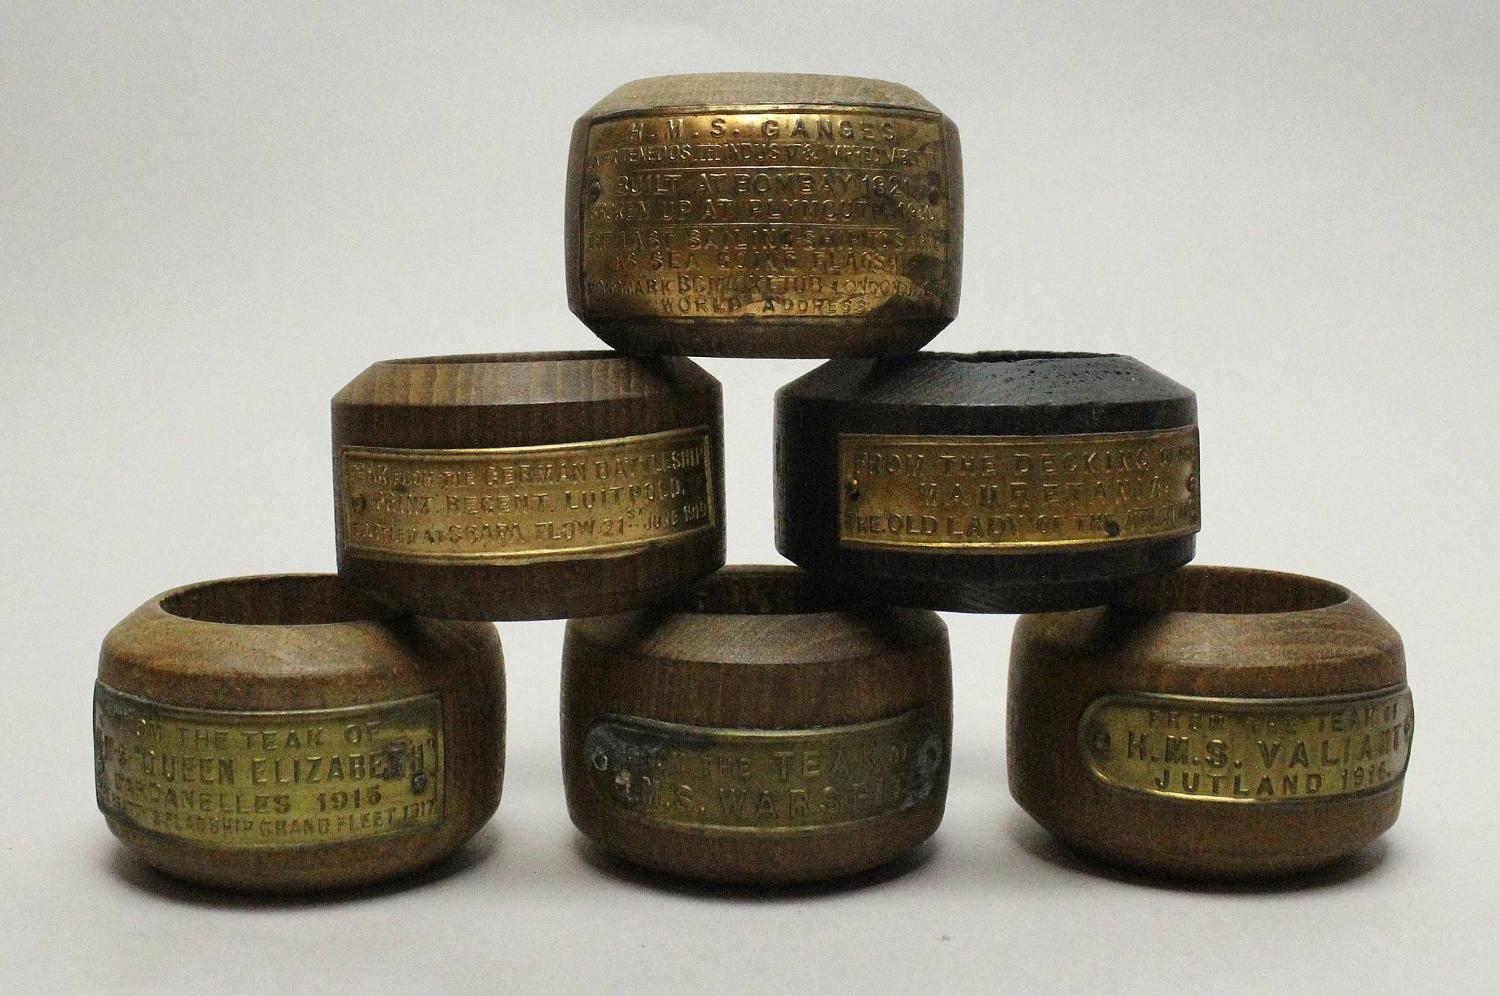 Commemorative Napkin Rings of Naval Interest